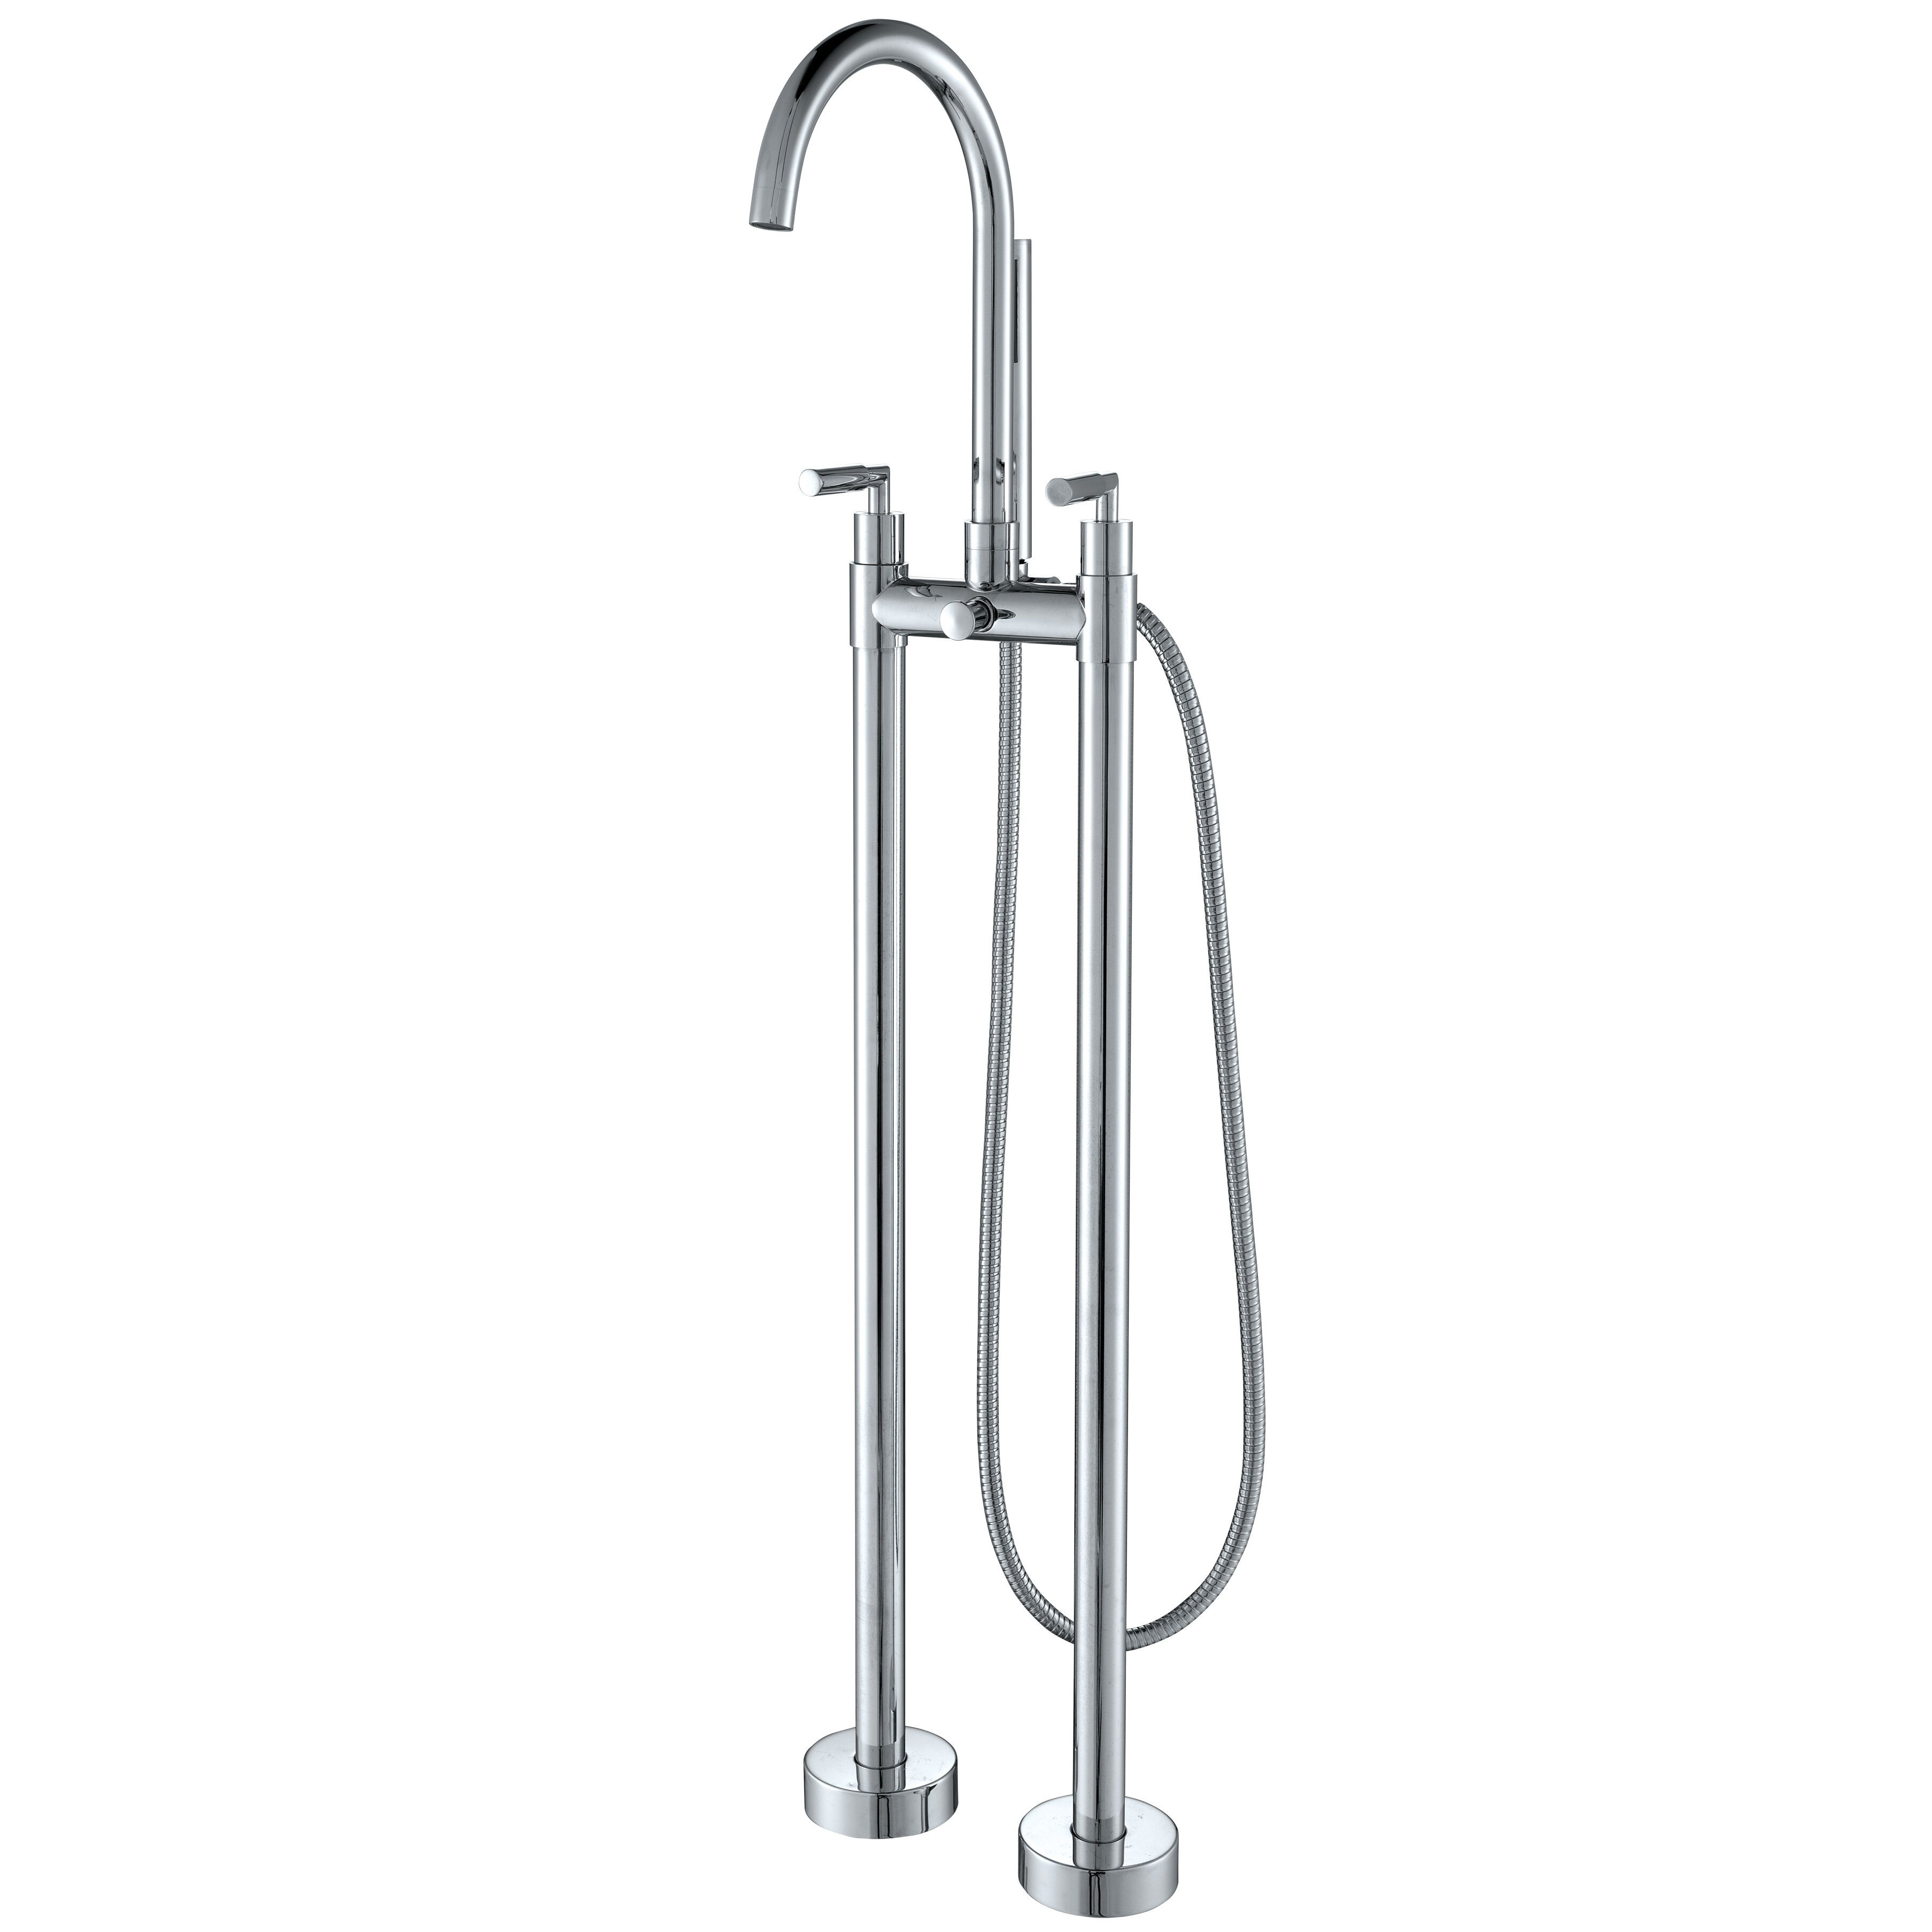 Akdy Double Handle Floor Mounted Clawfoot Tub Faucet Trim With Diverter And Handshower Reviews Wayfair